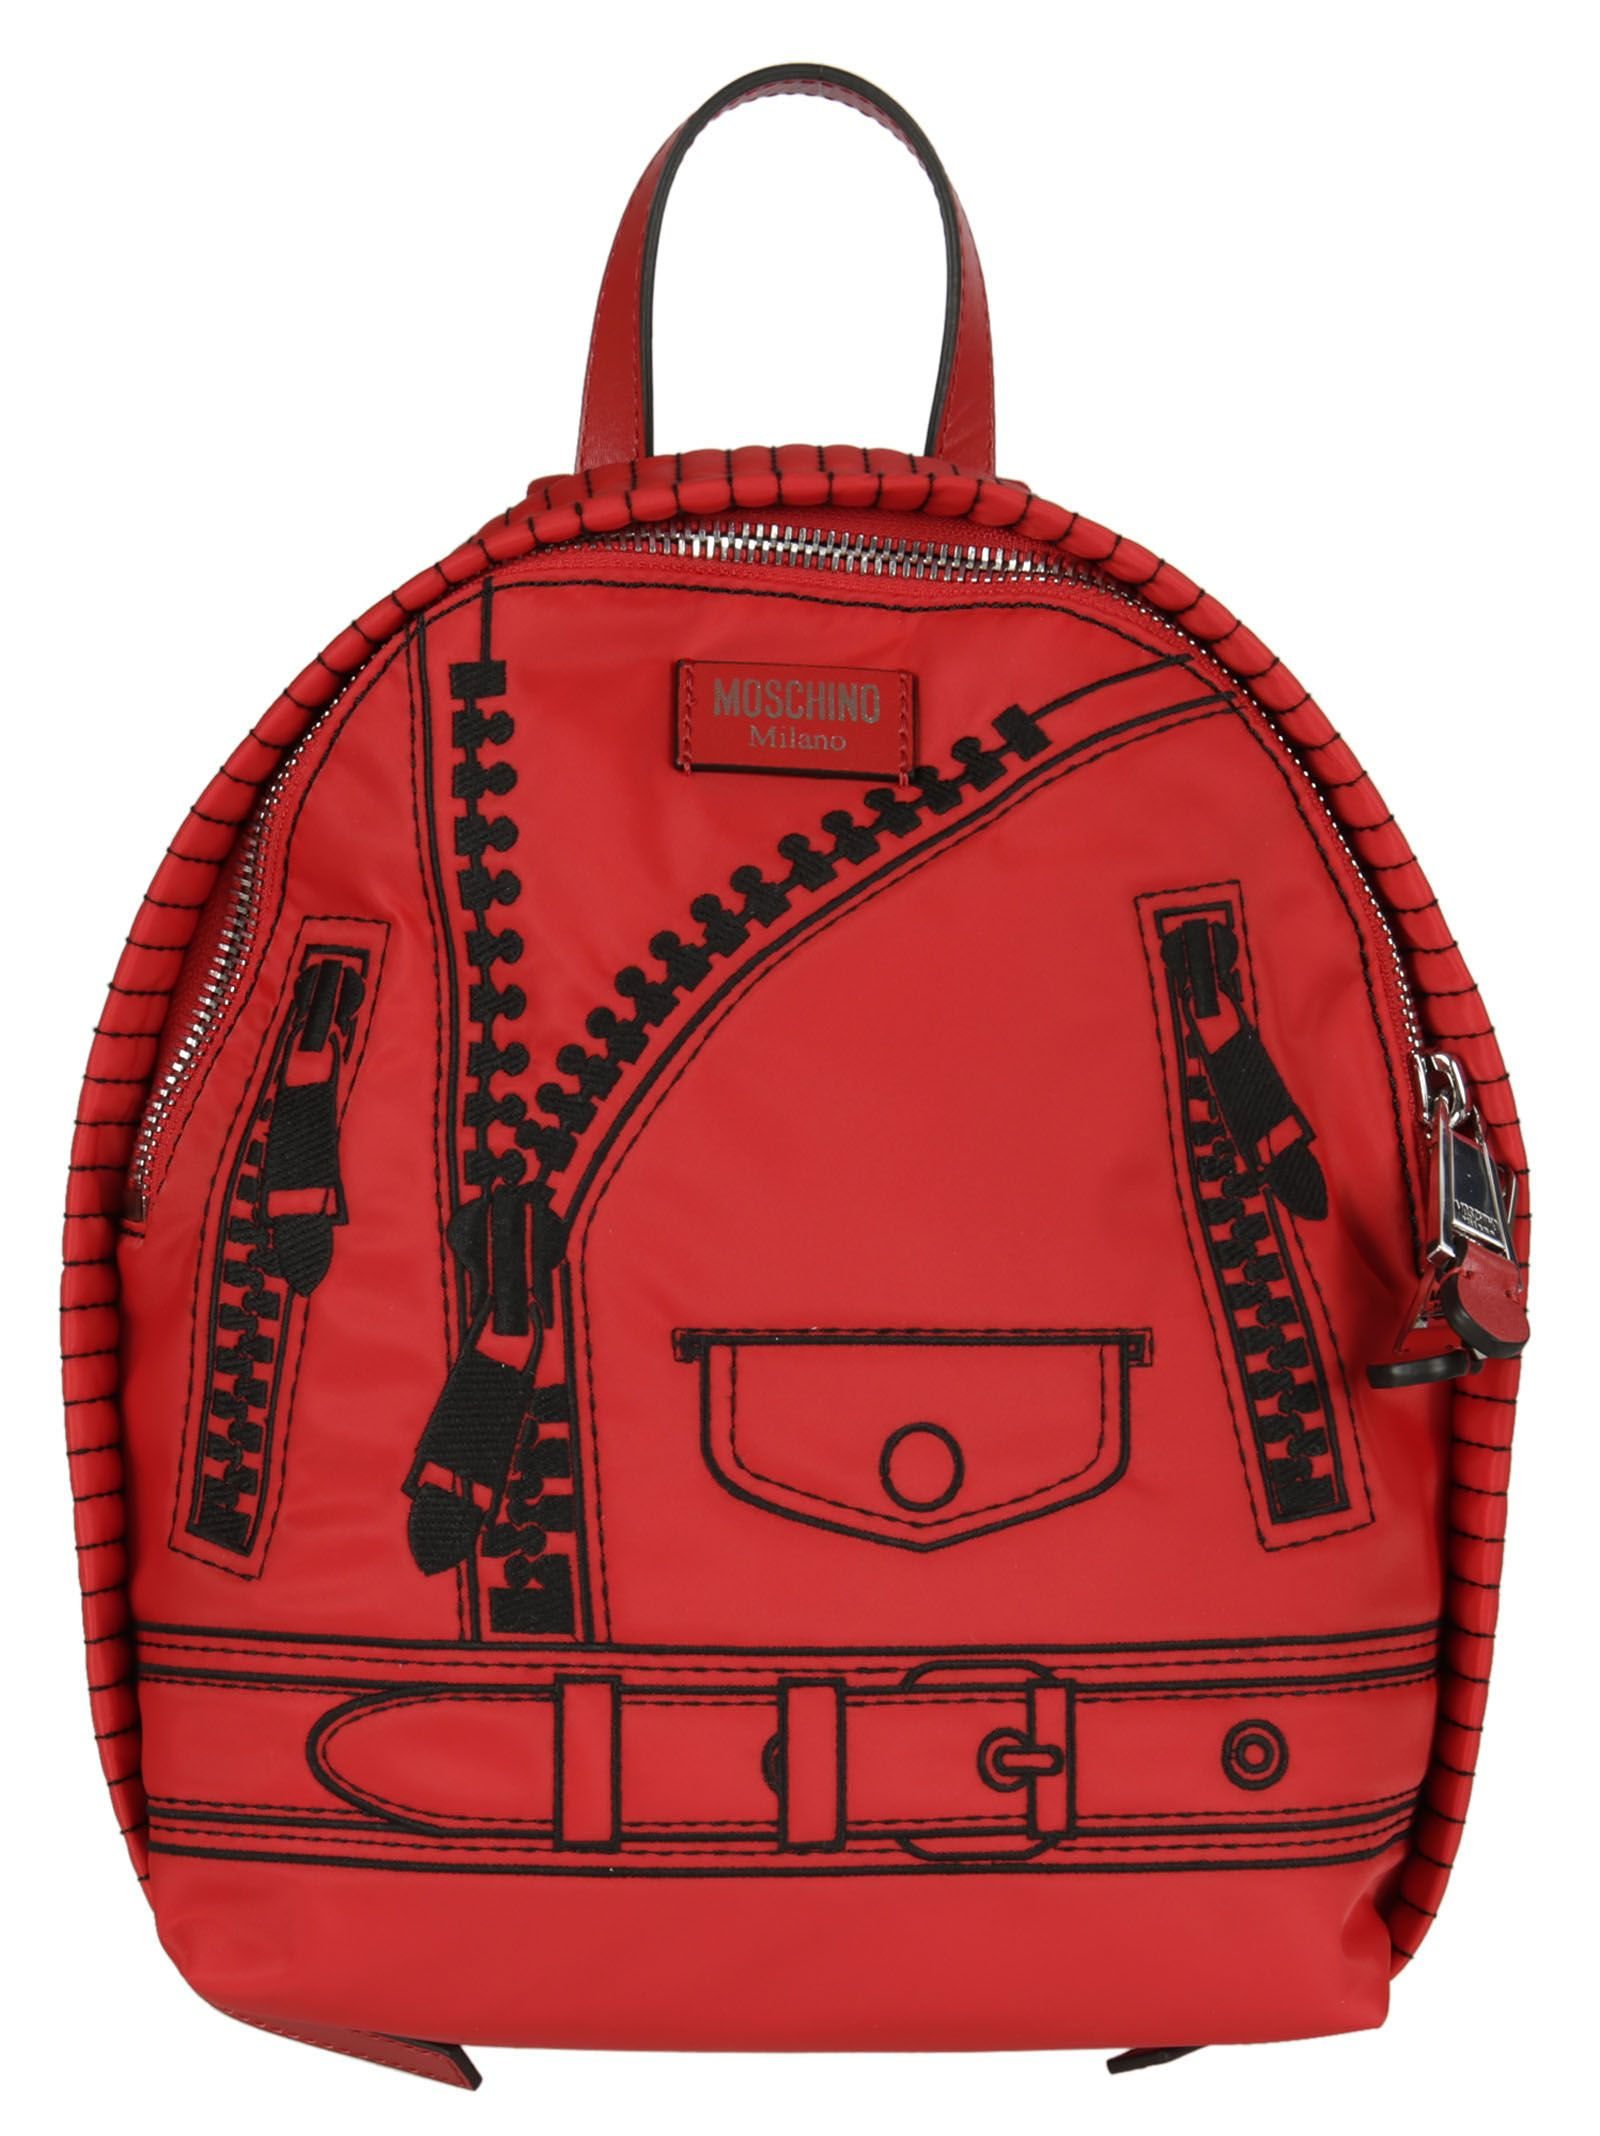 Zipper Design Backpack from Moschino: Red Zipper Design Backpack with Top handle, Adjustable Straps and Two way Zip fastening.